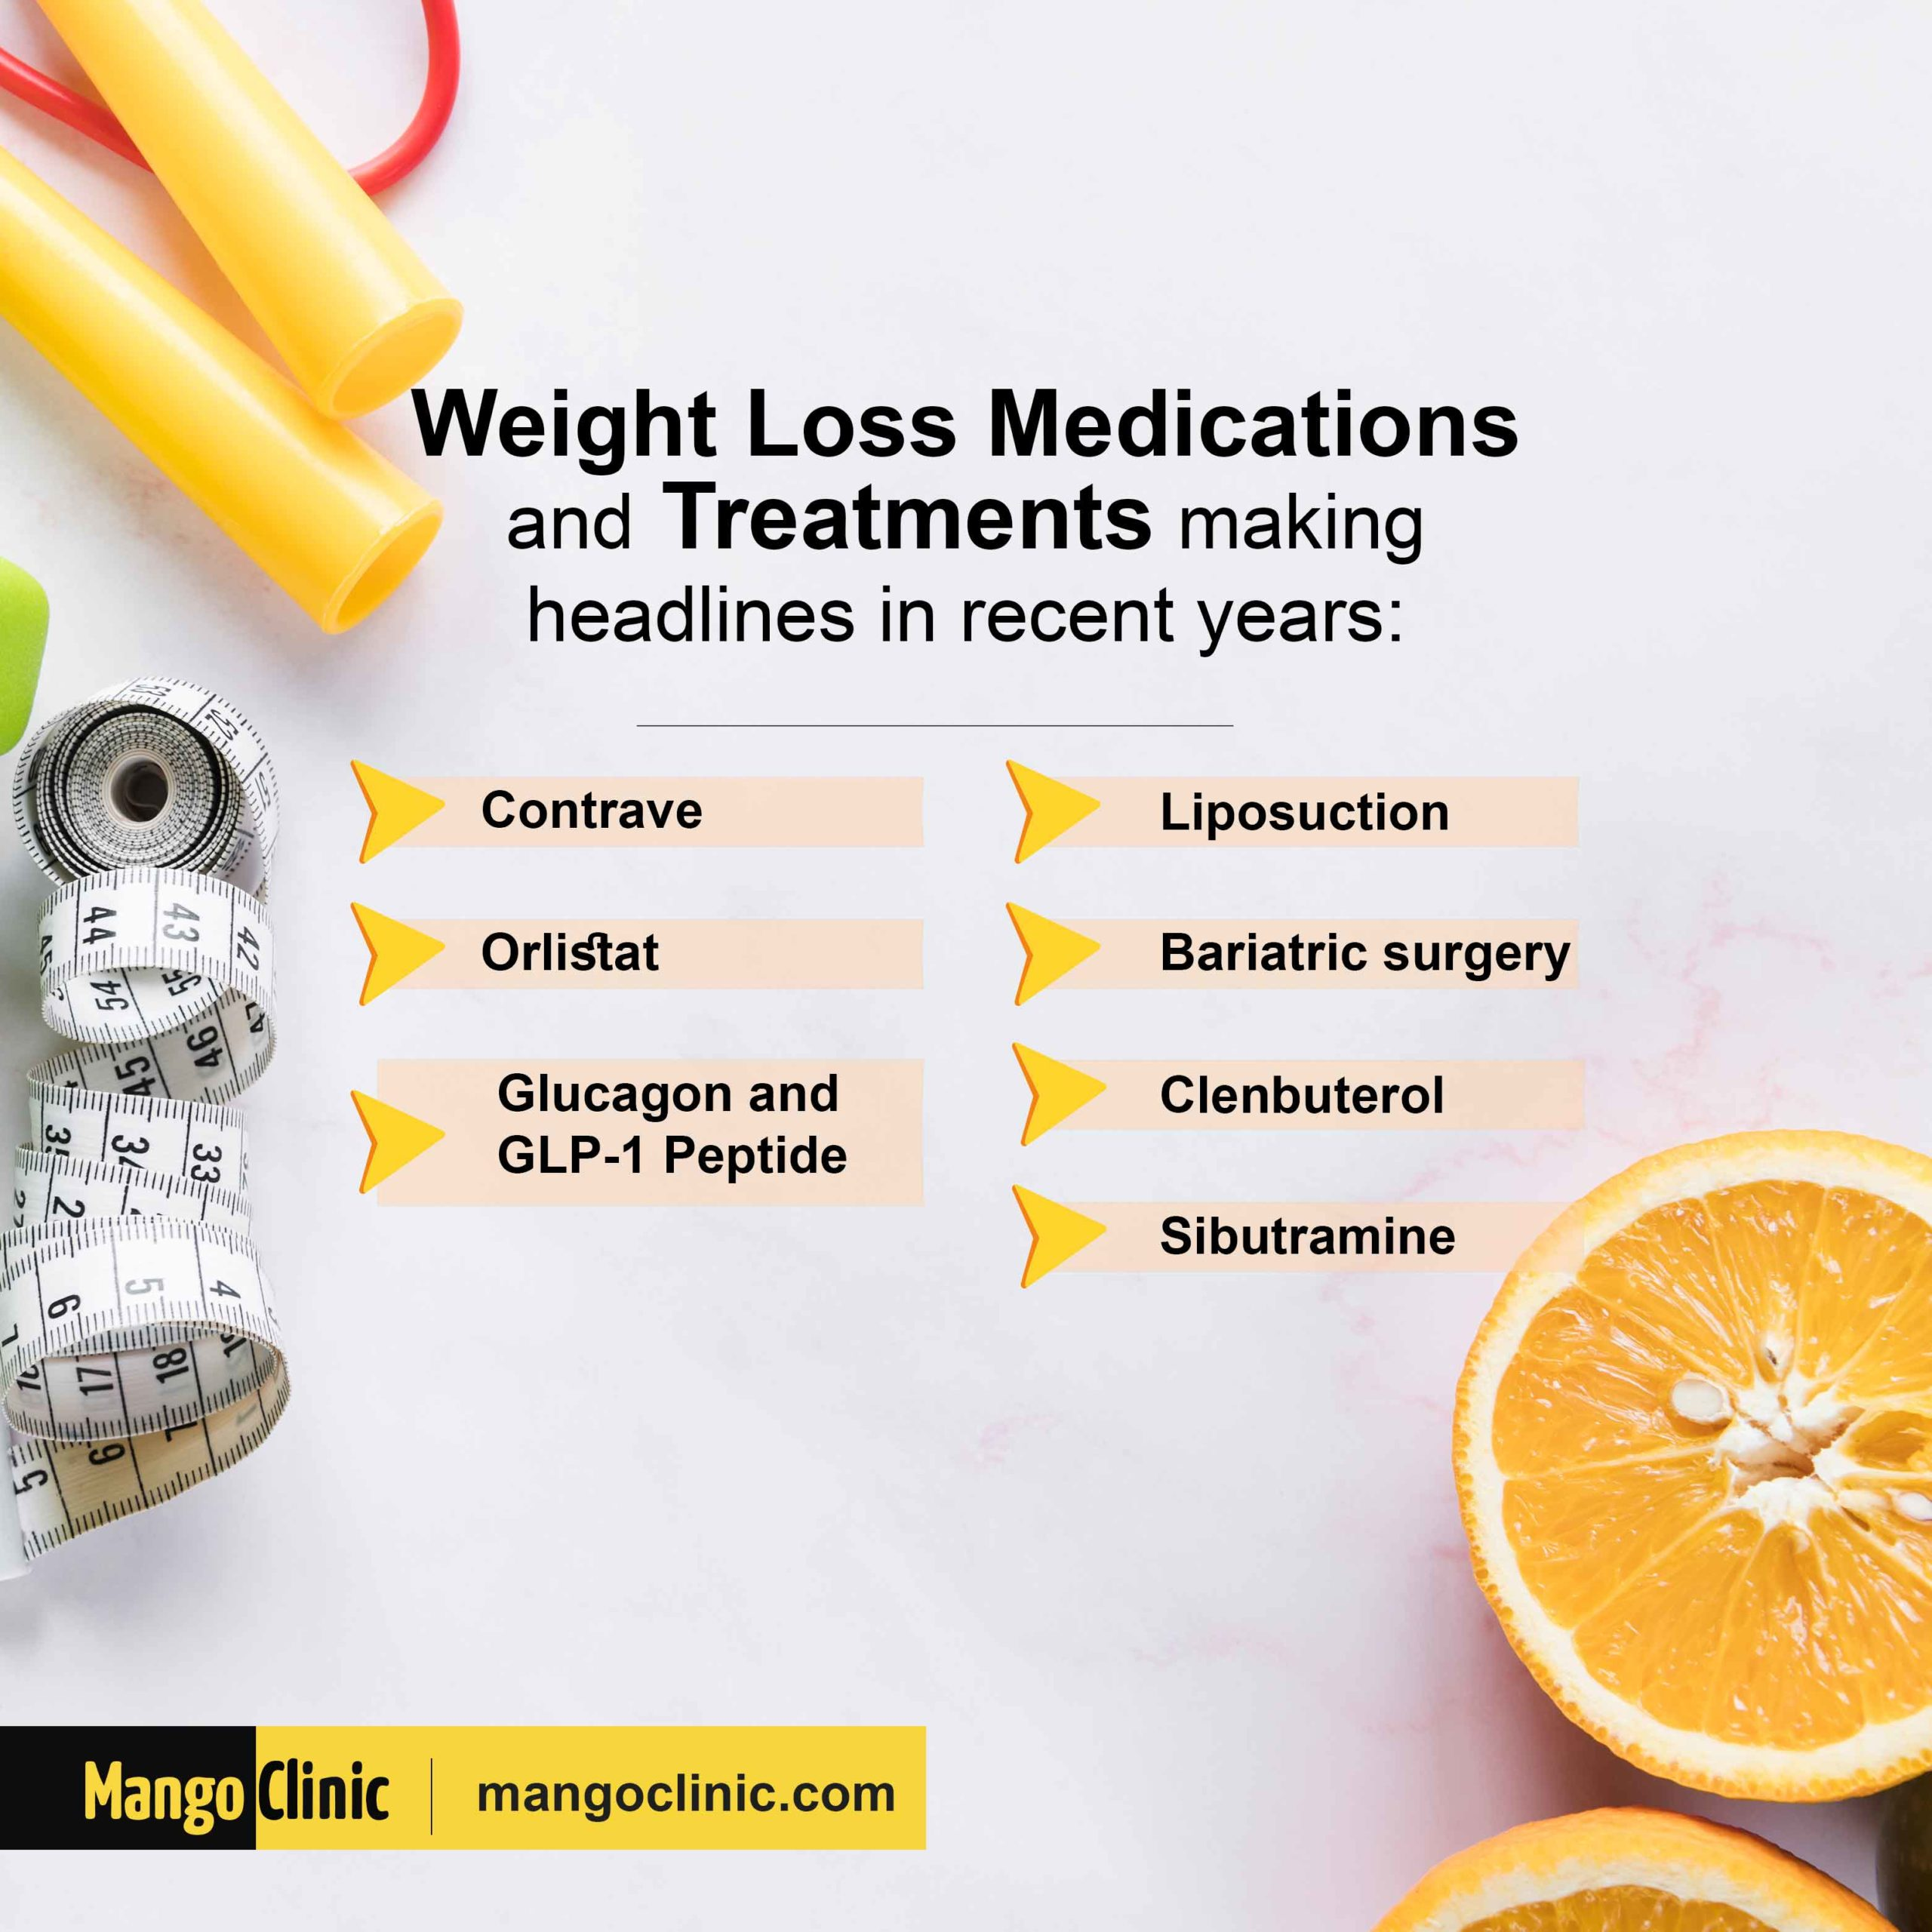 Successful weight loss treatments